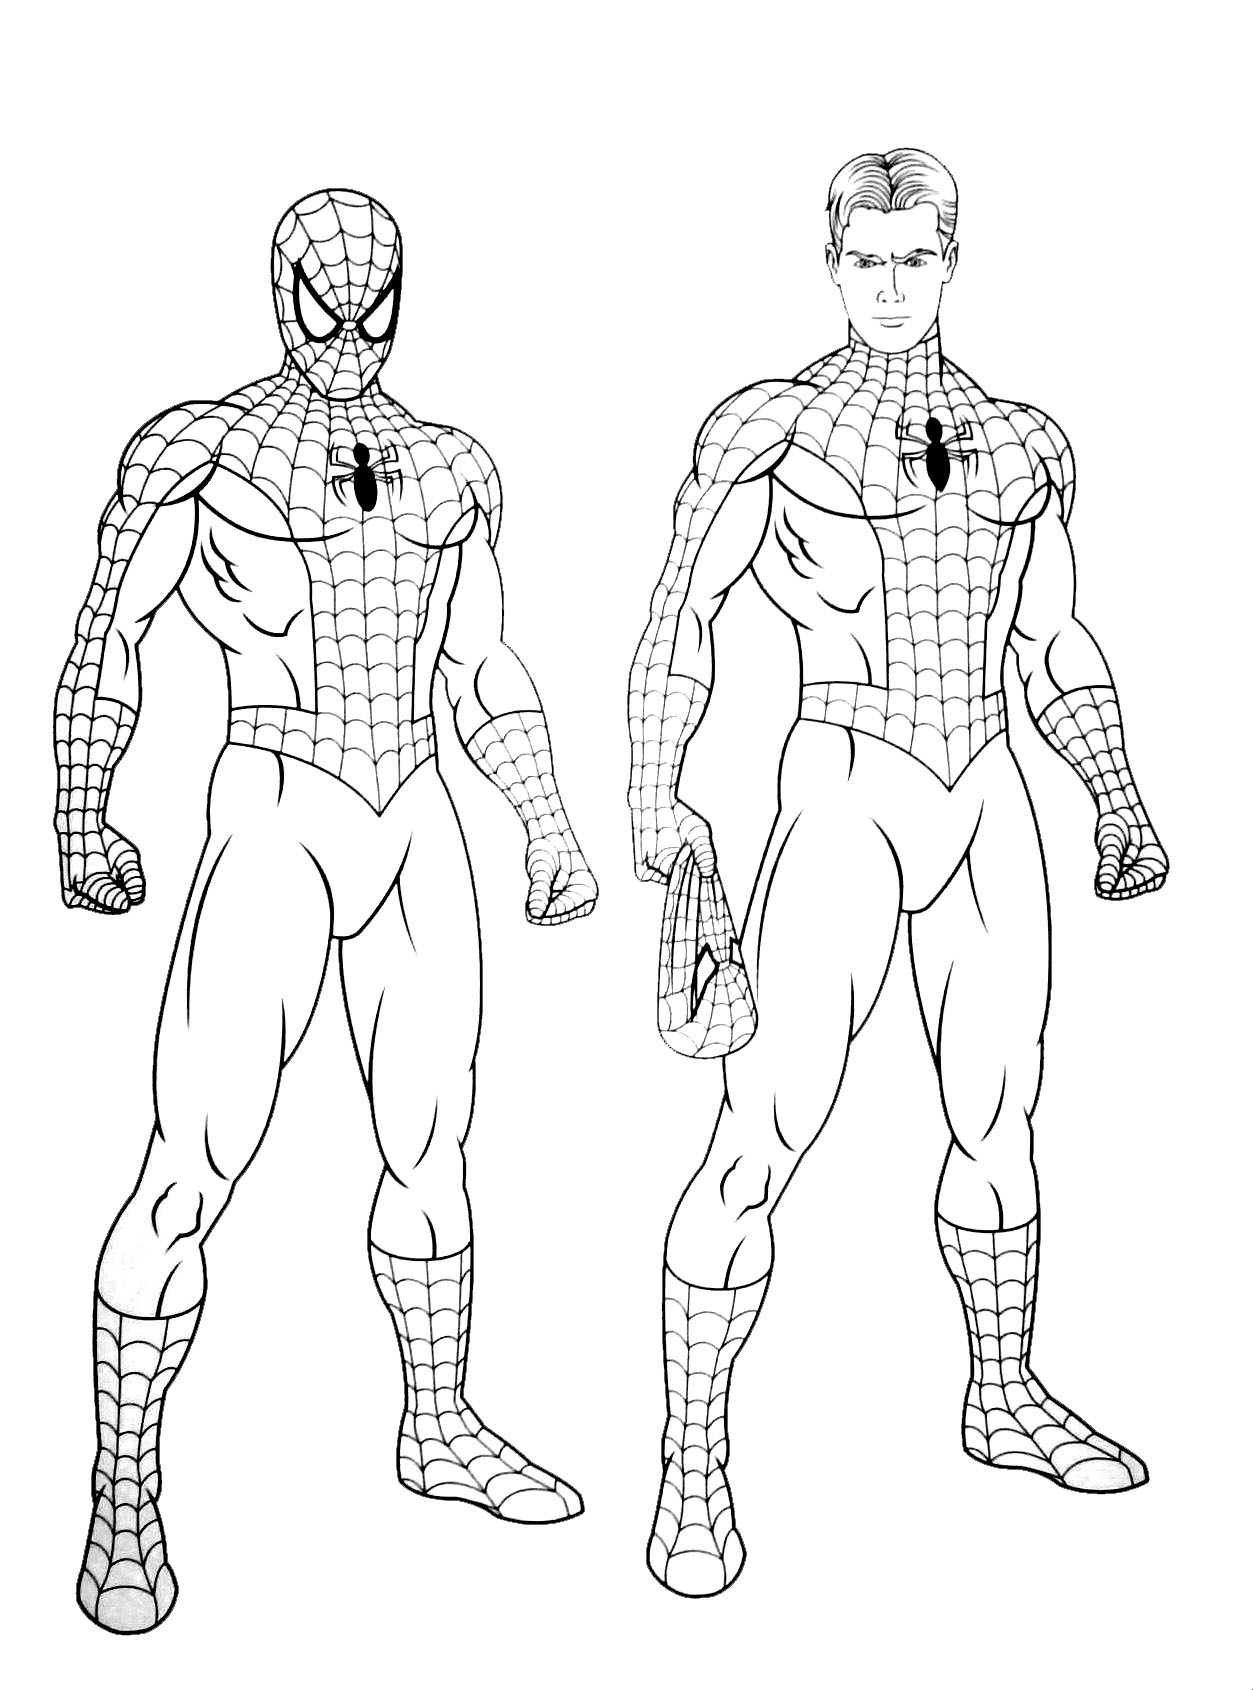 Beau Dessin A Colorier Spiderman 4